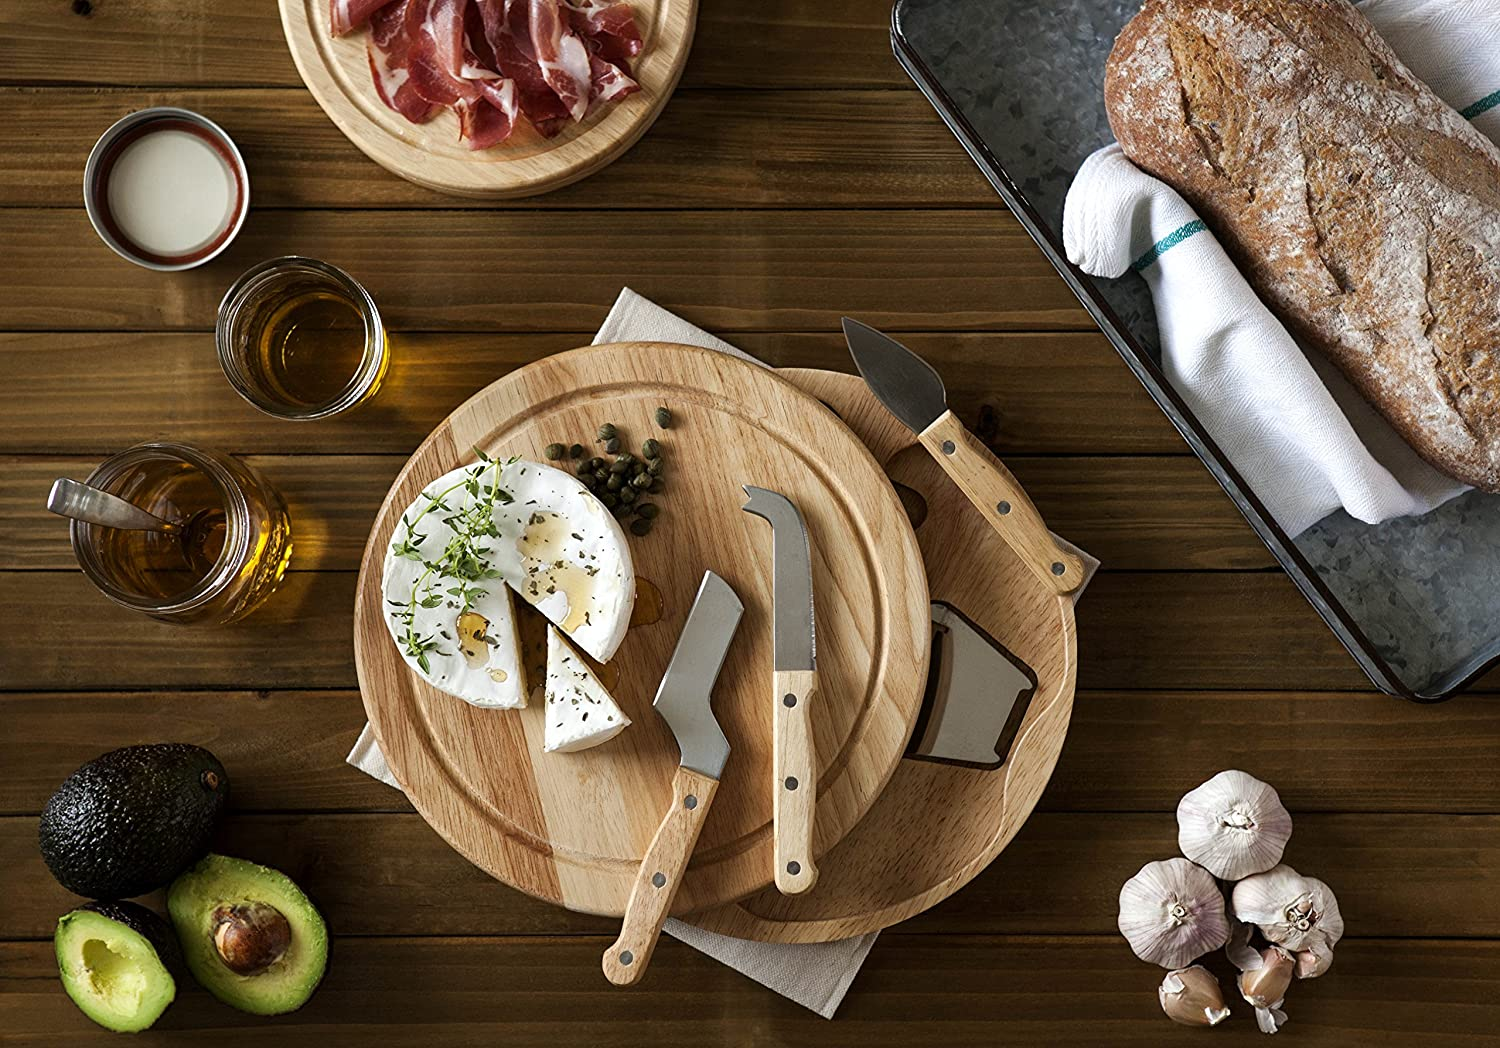 Durable Hardwood Cutting Board Opens to Reveal Stainless Steel Tools Nested Inside